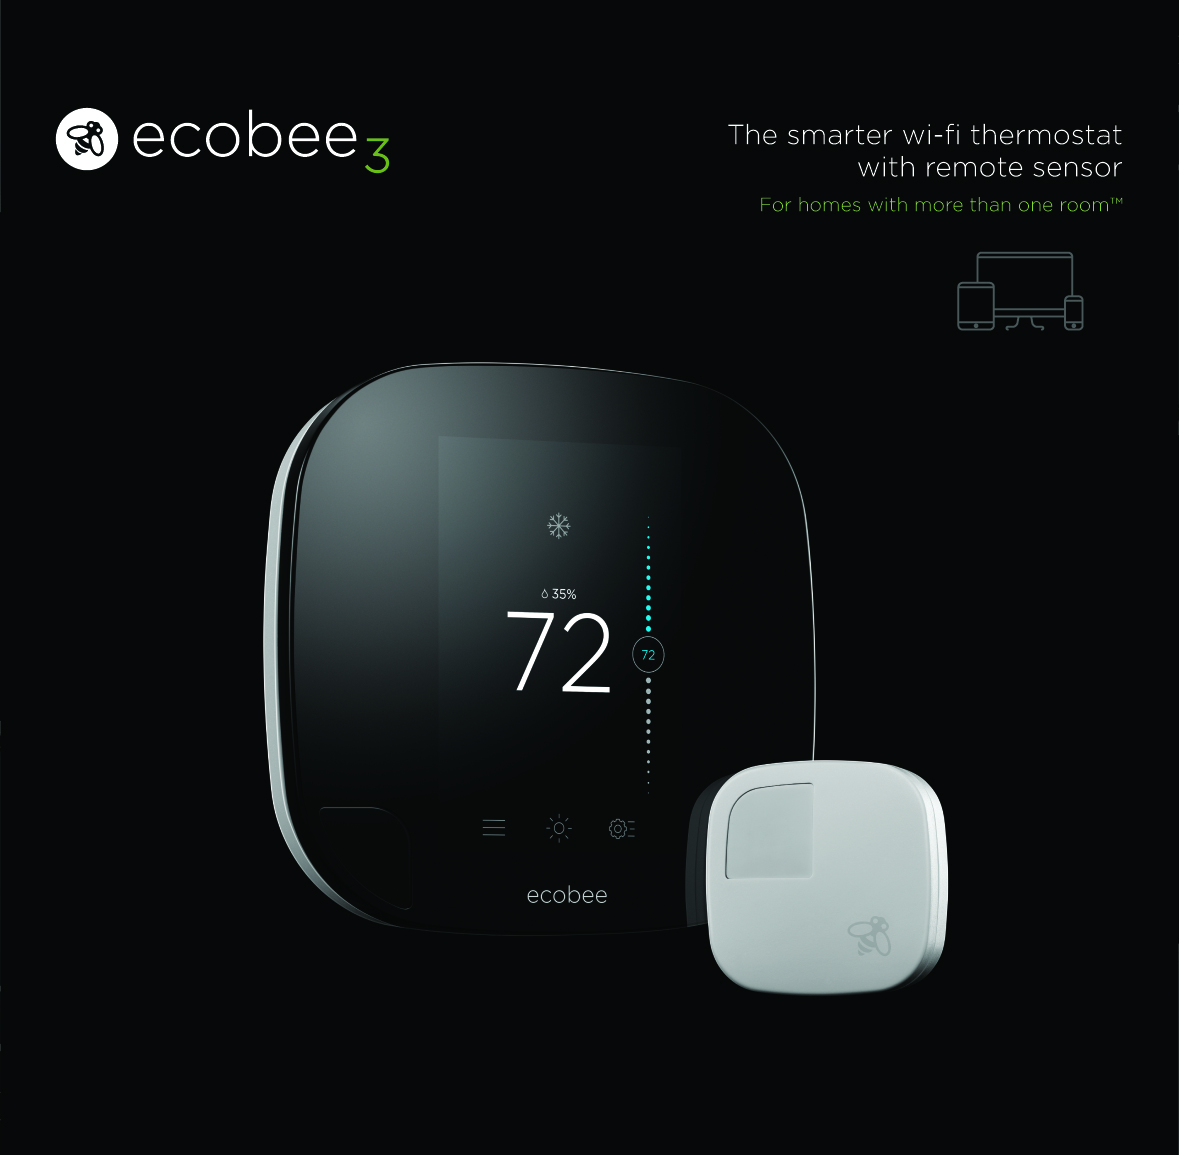 Ecobee Sensor Introducing Ecobee3 With Wireless Remote Sensors Ecobee Smart